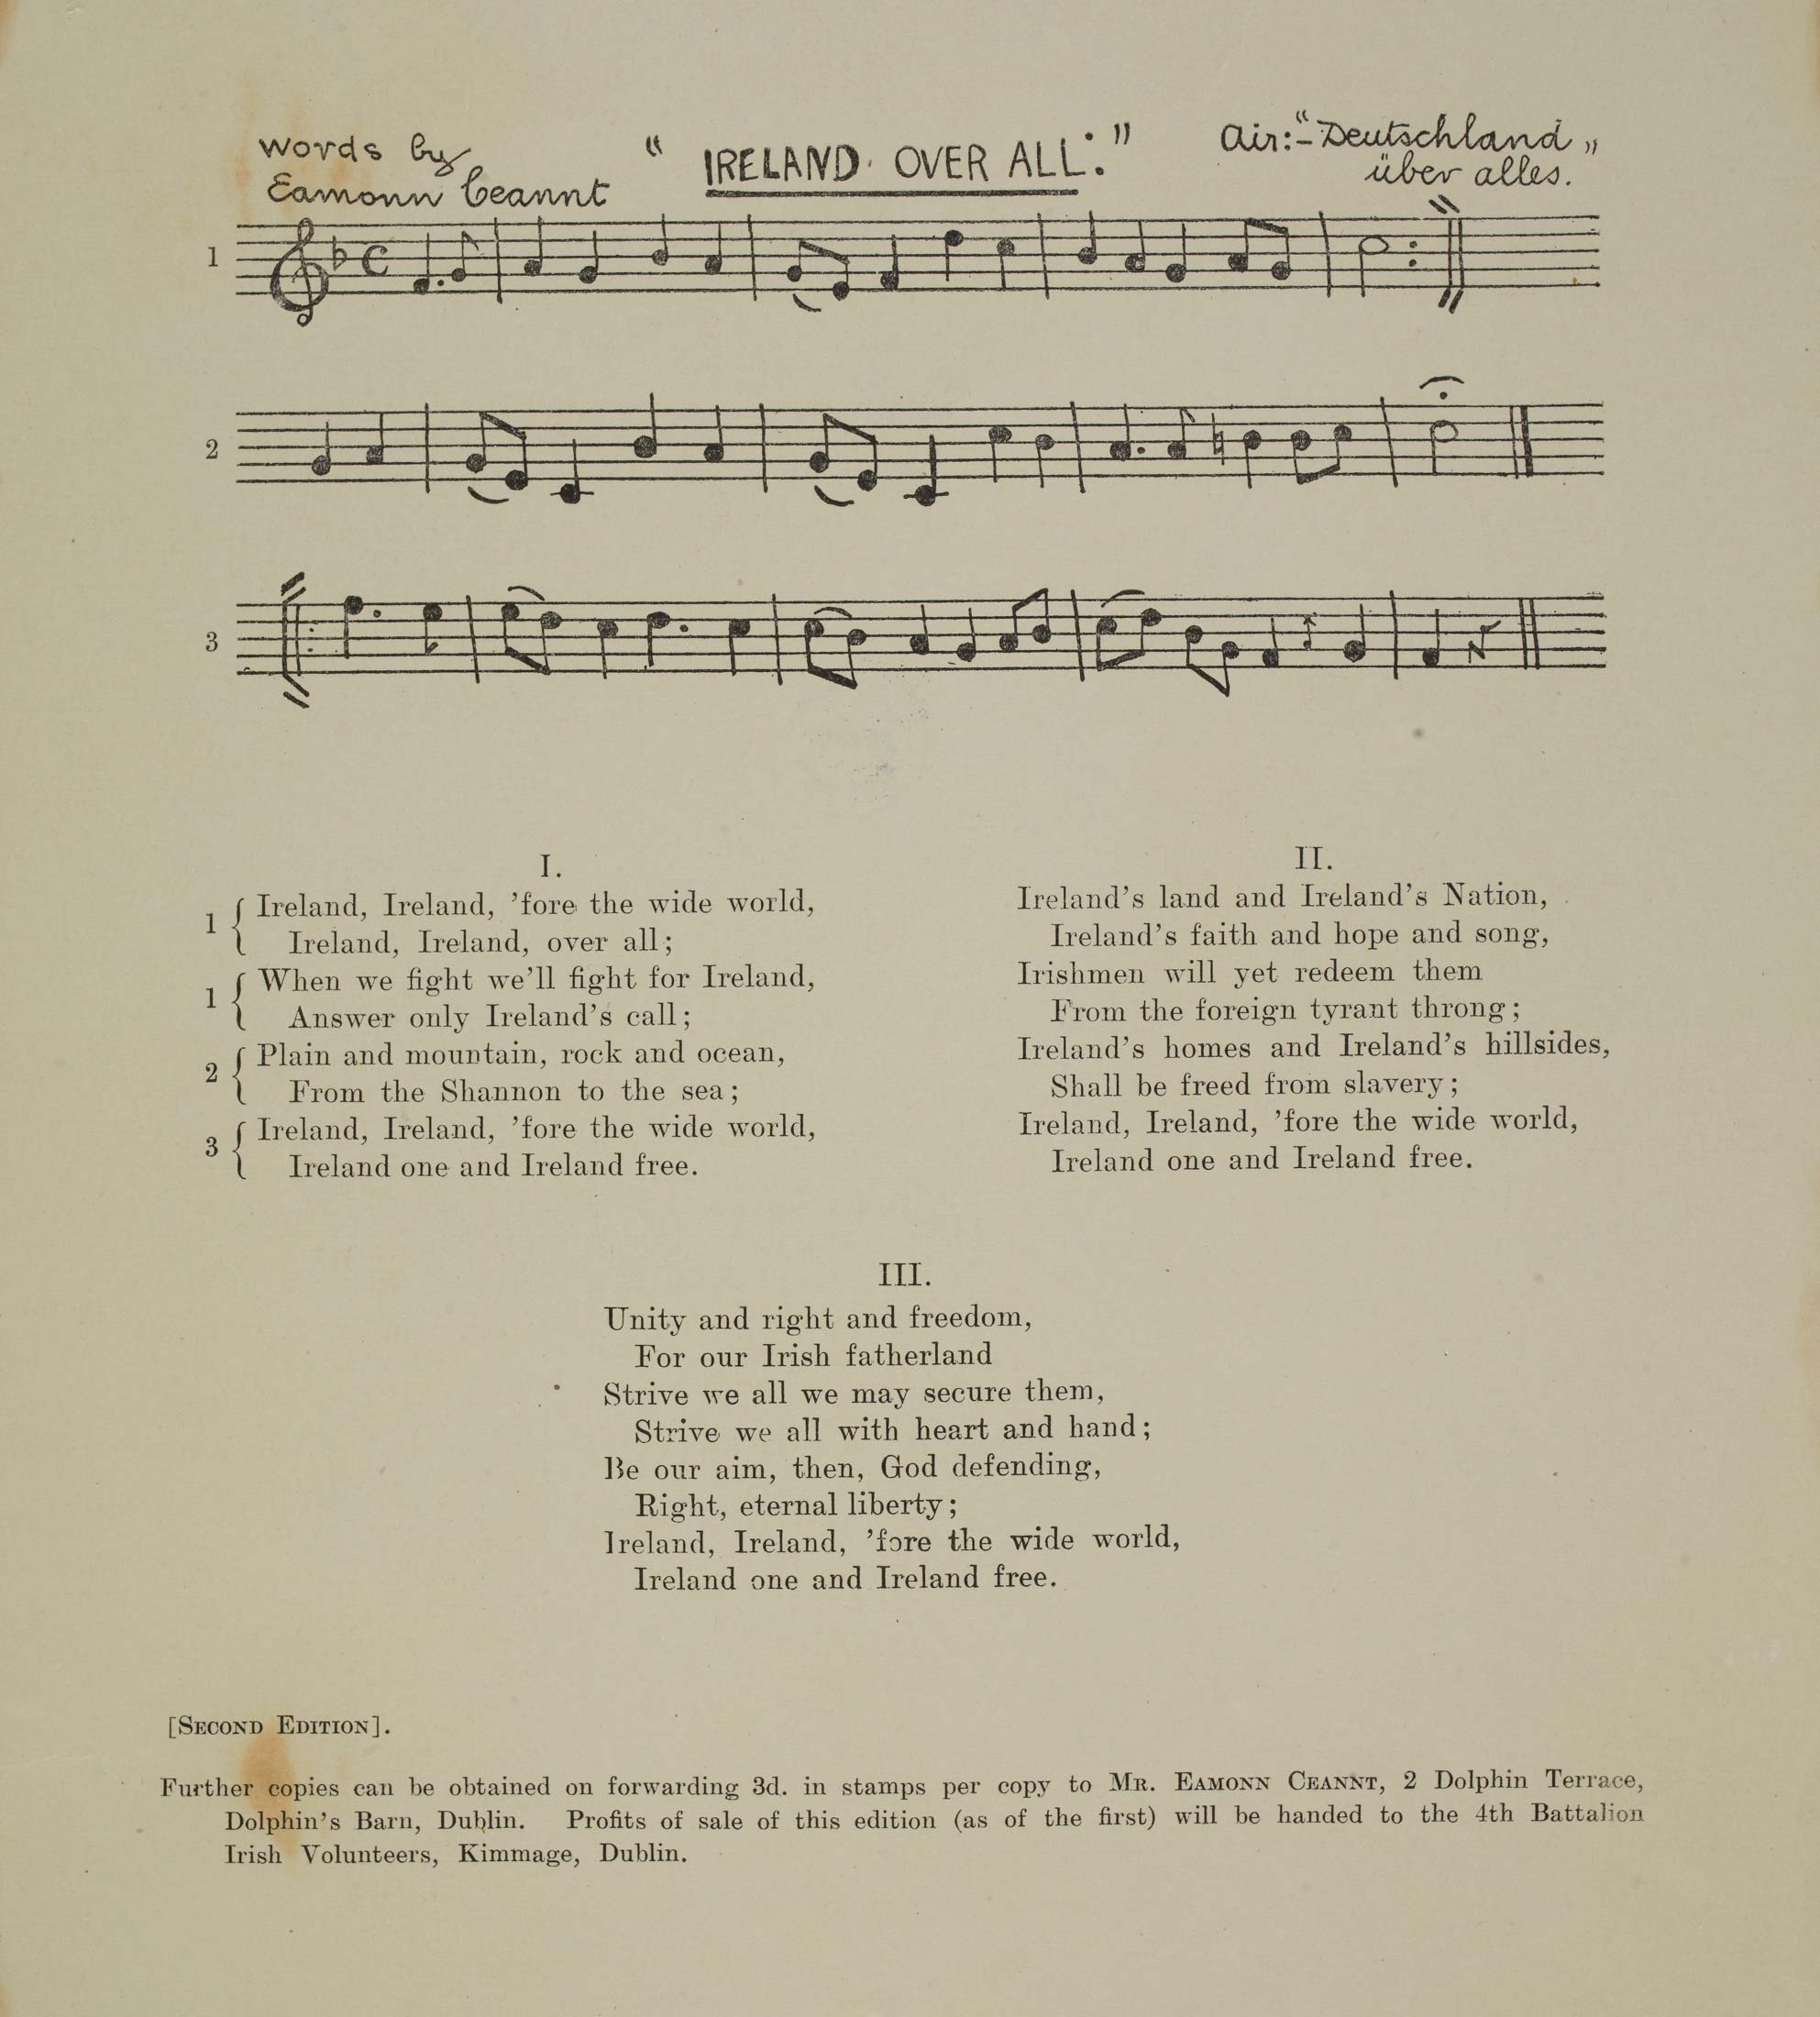 1916-ceanntpapers-song